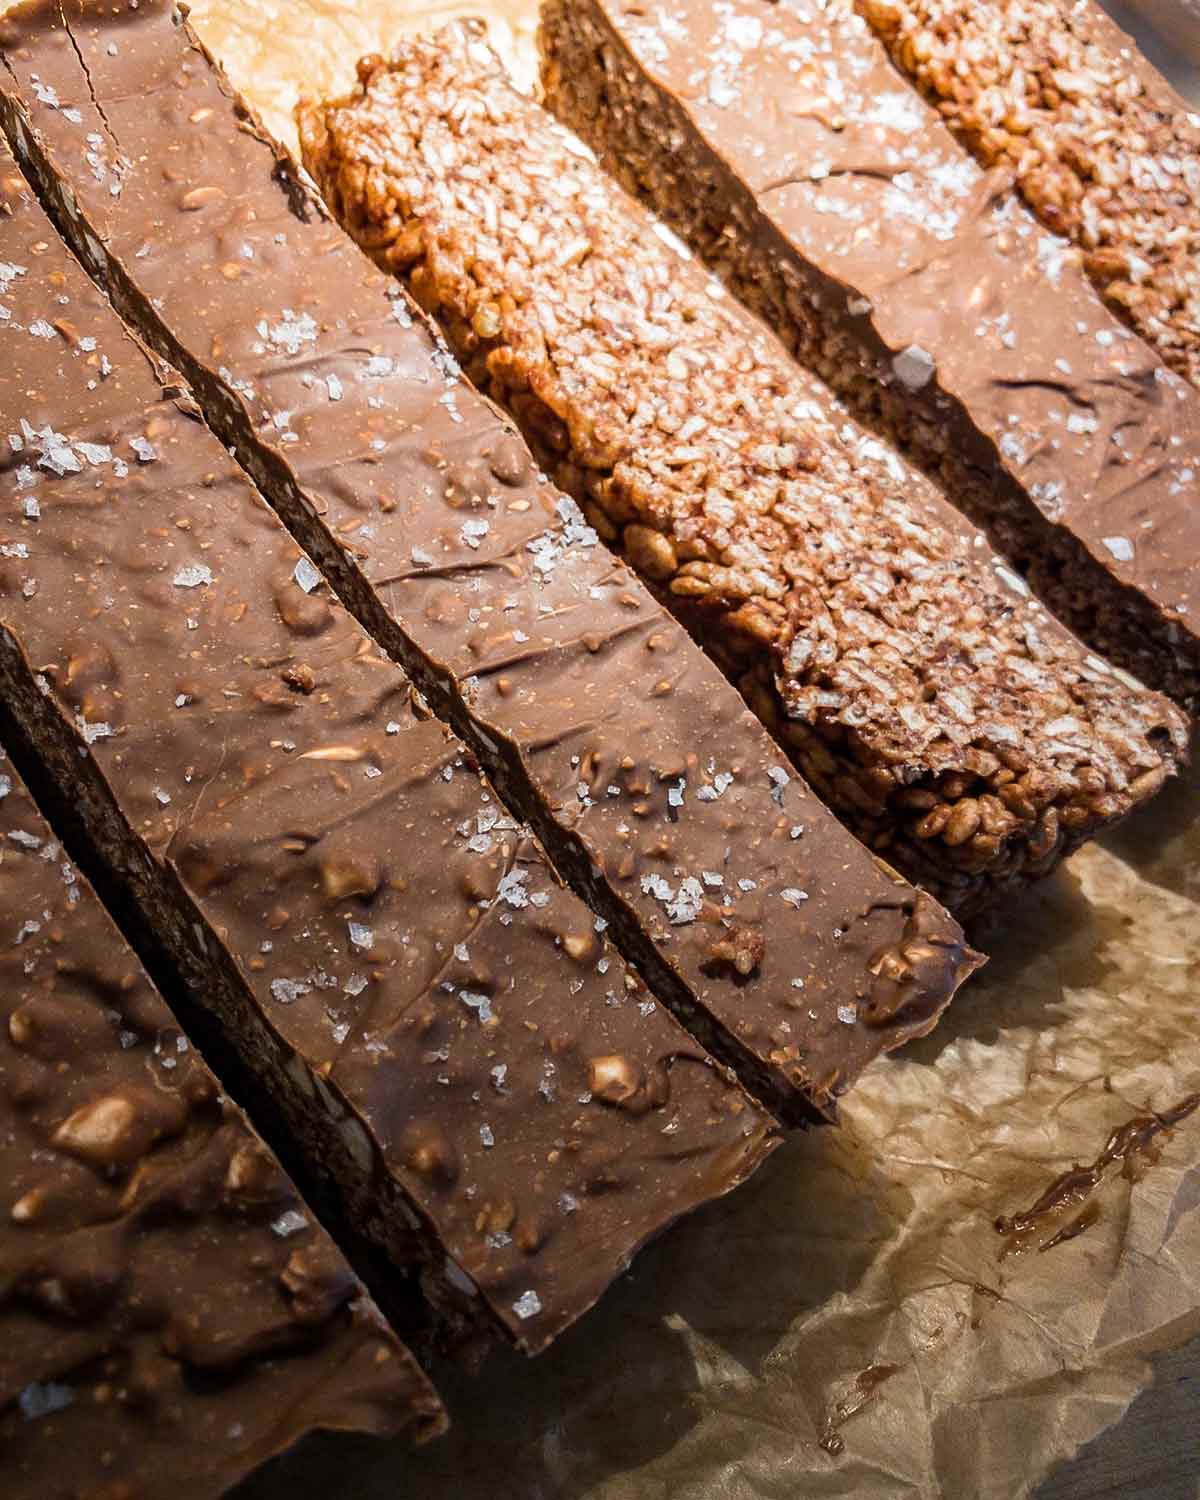 A pan of Toblerone Rice Krispies treats cut into bars.